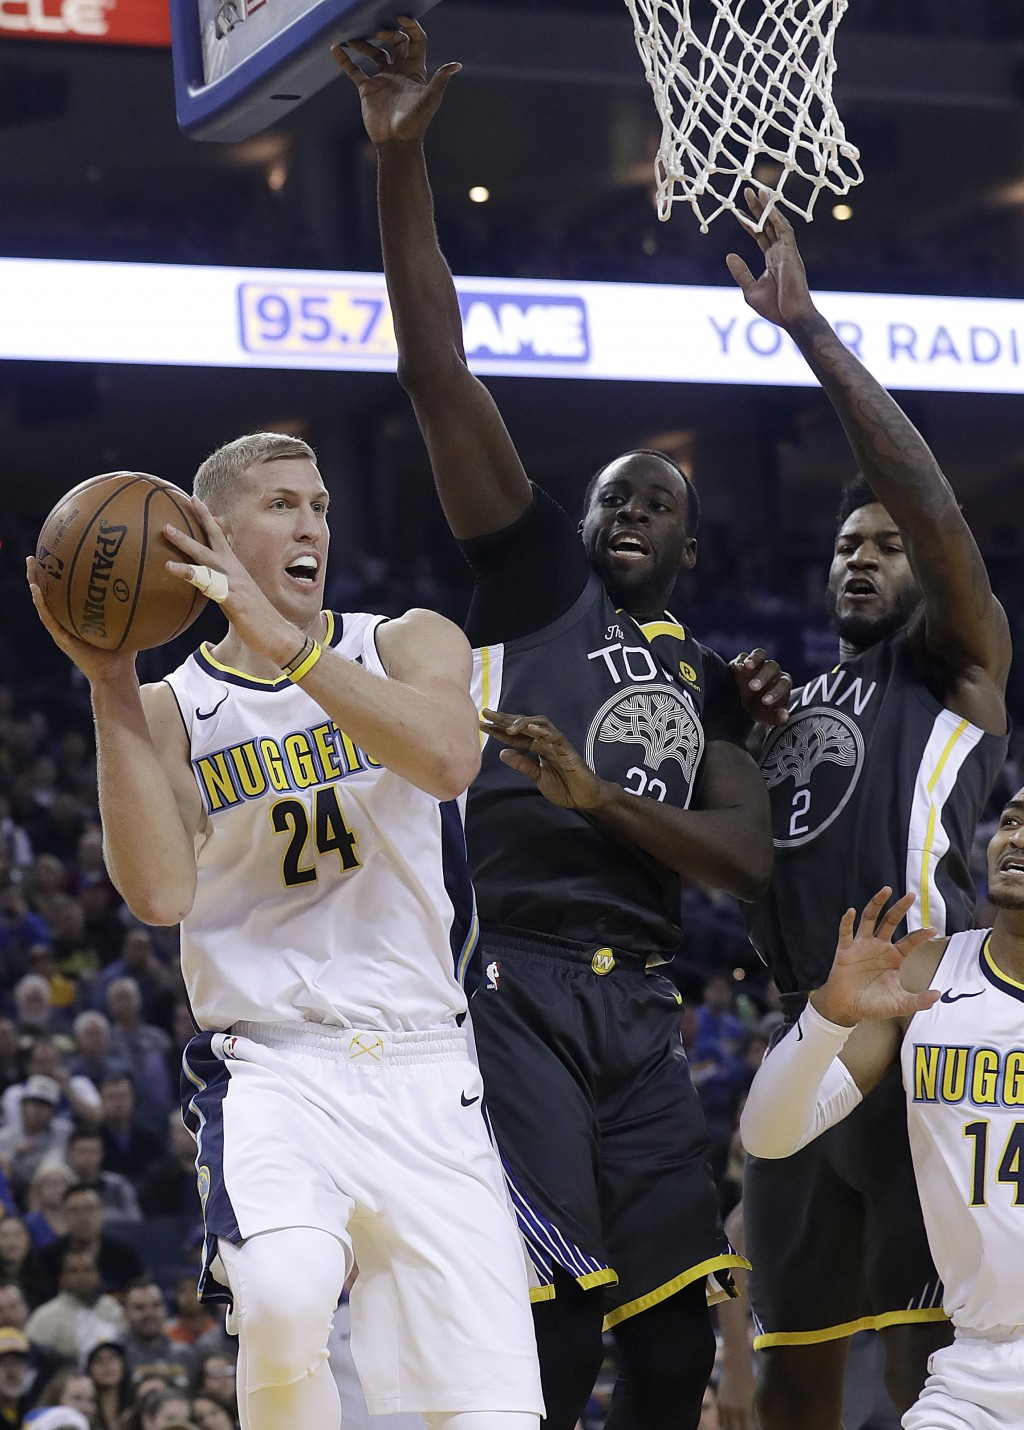 Denver Nuggets center Mason Plumlee (24) looks to pass the ball as Golden State Warriors forward Draymond Green, center, and forward Jordan Bell (2) d...